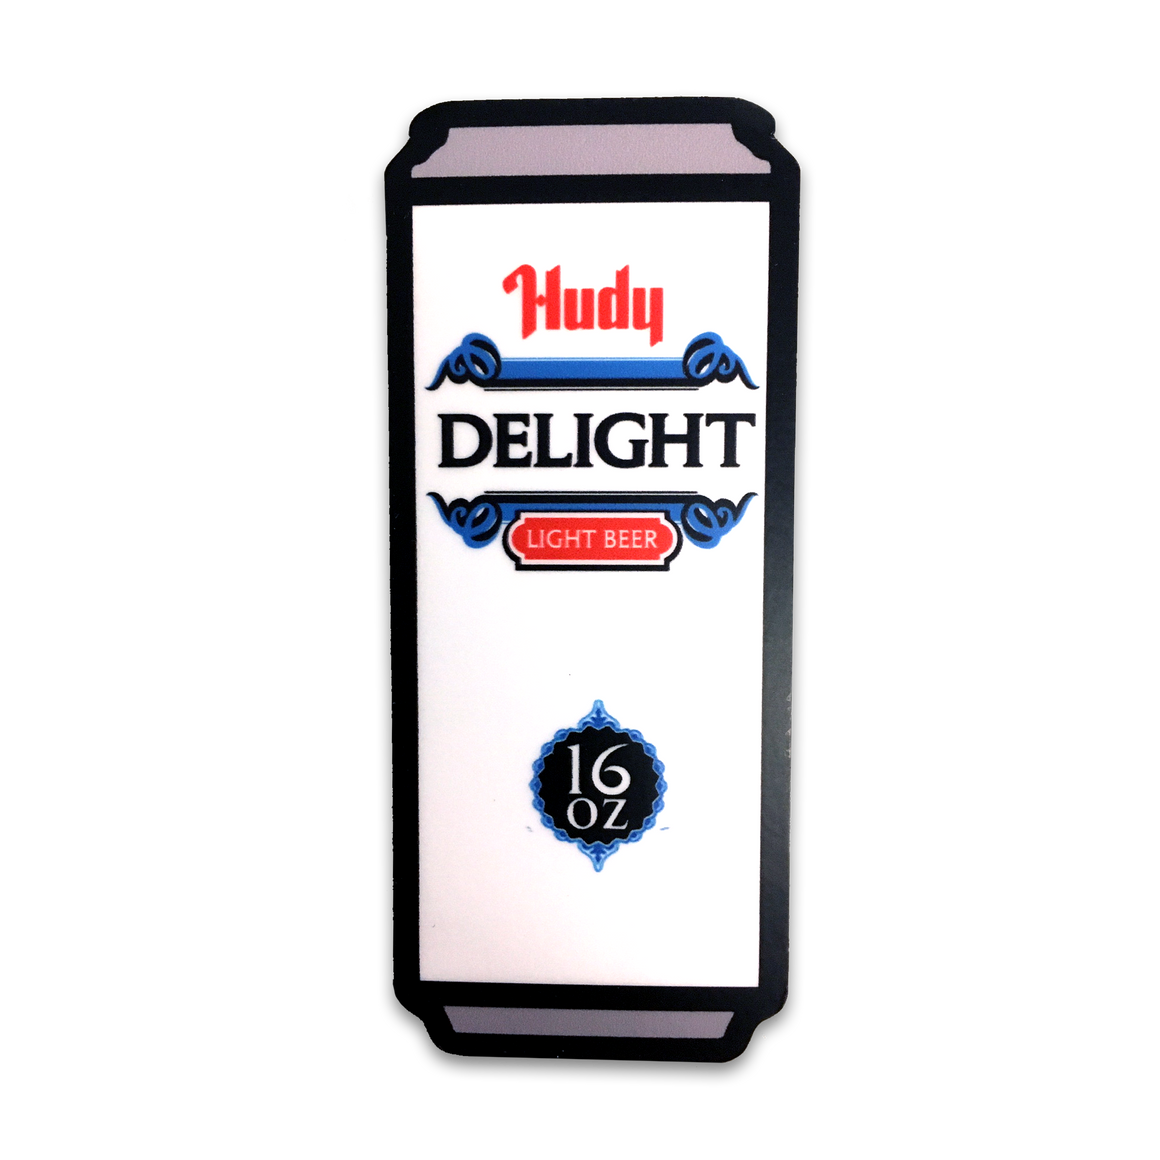 Hudy Delight Tall Stack Cans Sticker - Cincy Shirts